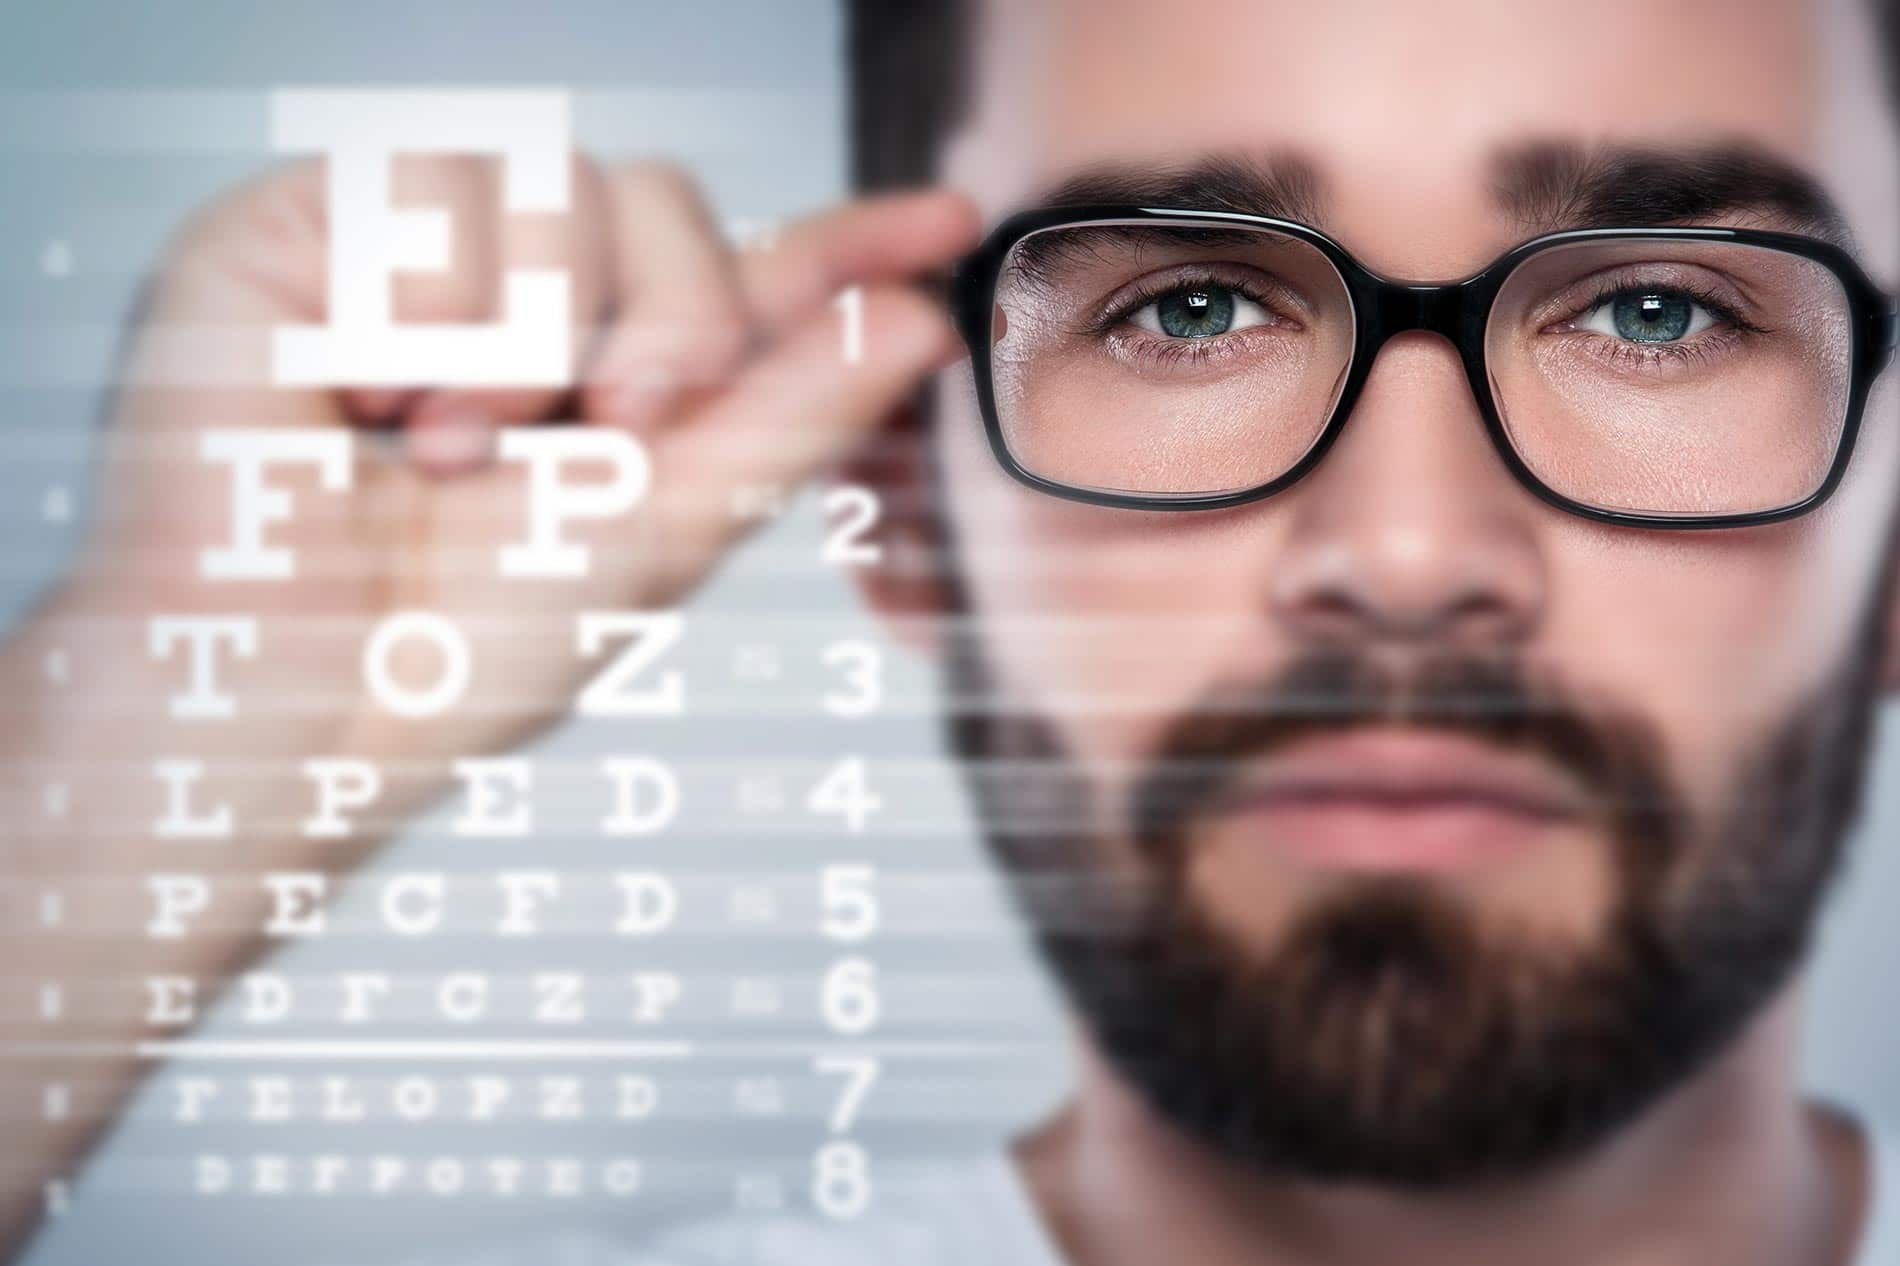 Common signs that you may need eye glasses